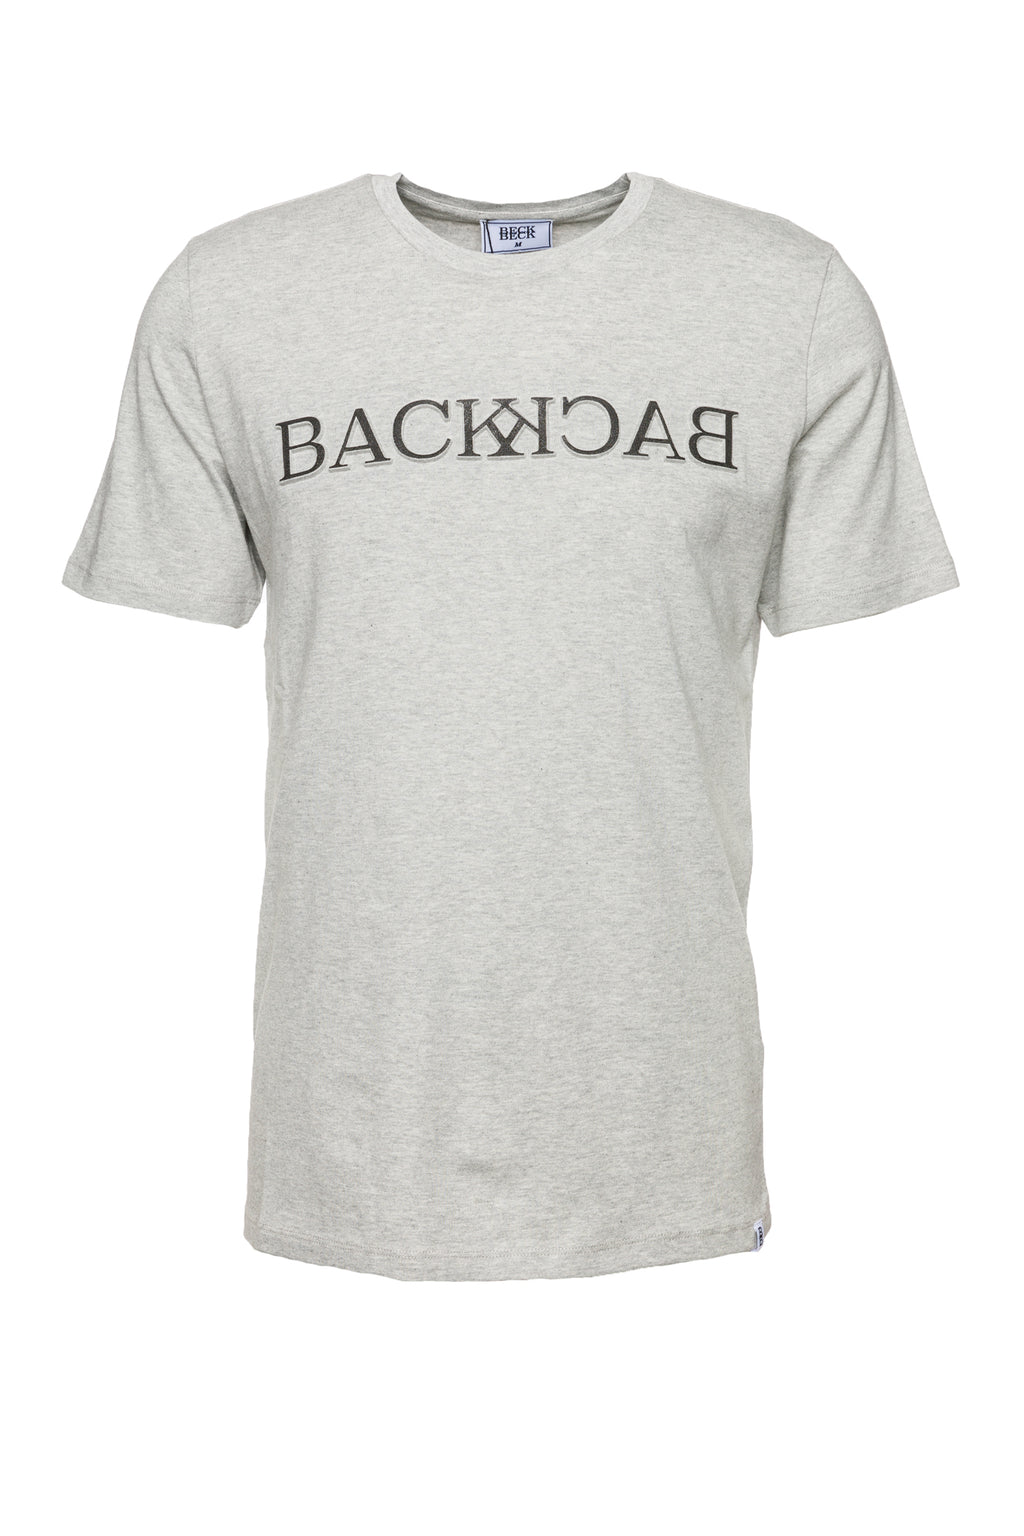 "BECK TO BECK T-Shirt ""BACKBACK 3D"""